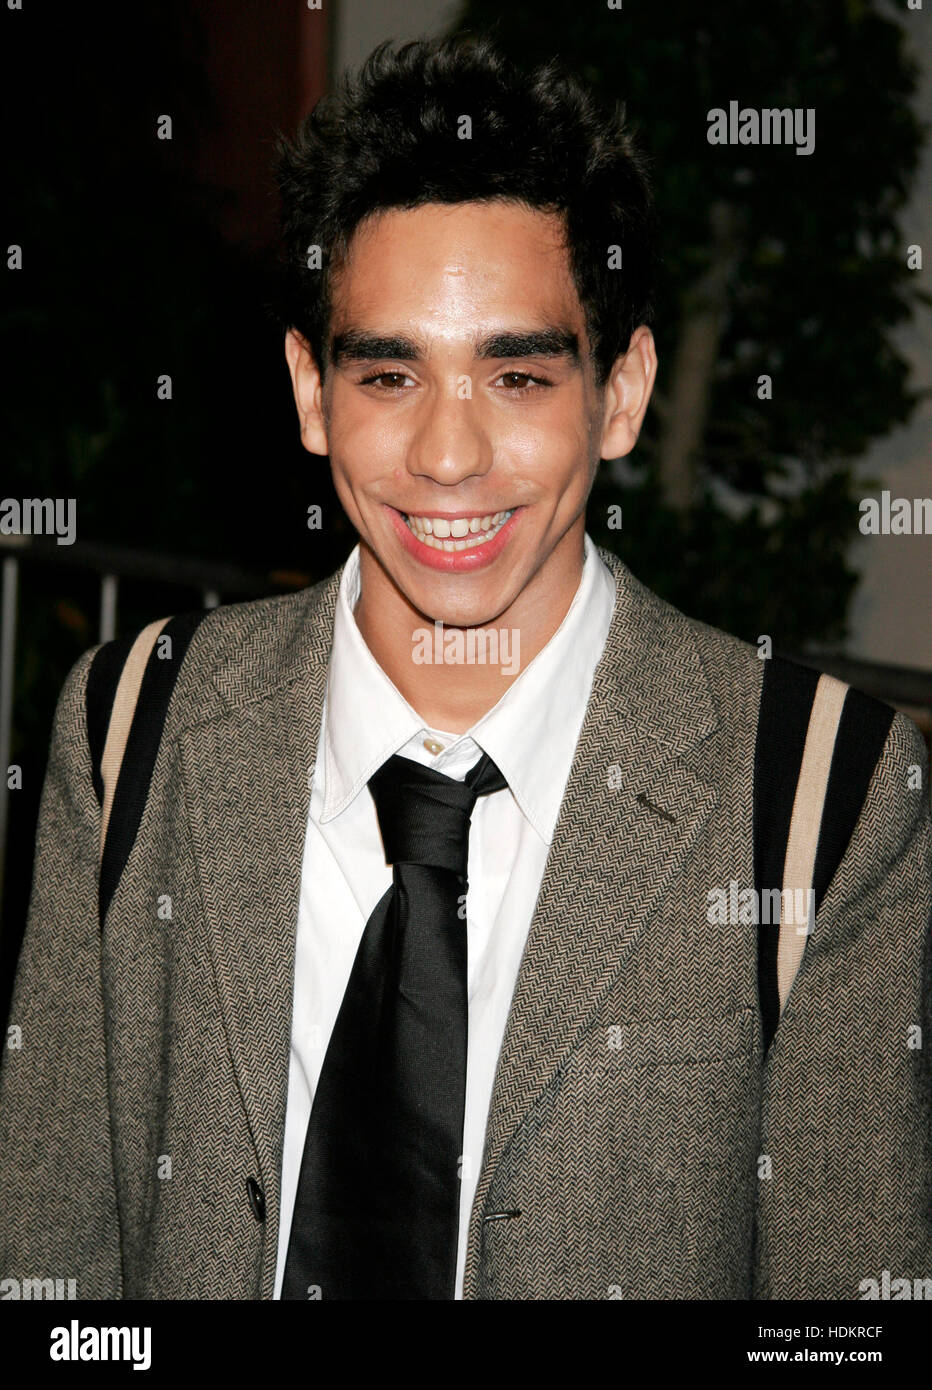 Actor Ray Santiago arrives at the December 16th, 2004 Los Angeles premiere of the film, ' Meet the Fockers'. - Stock Image